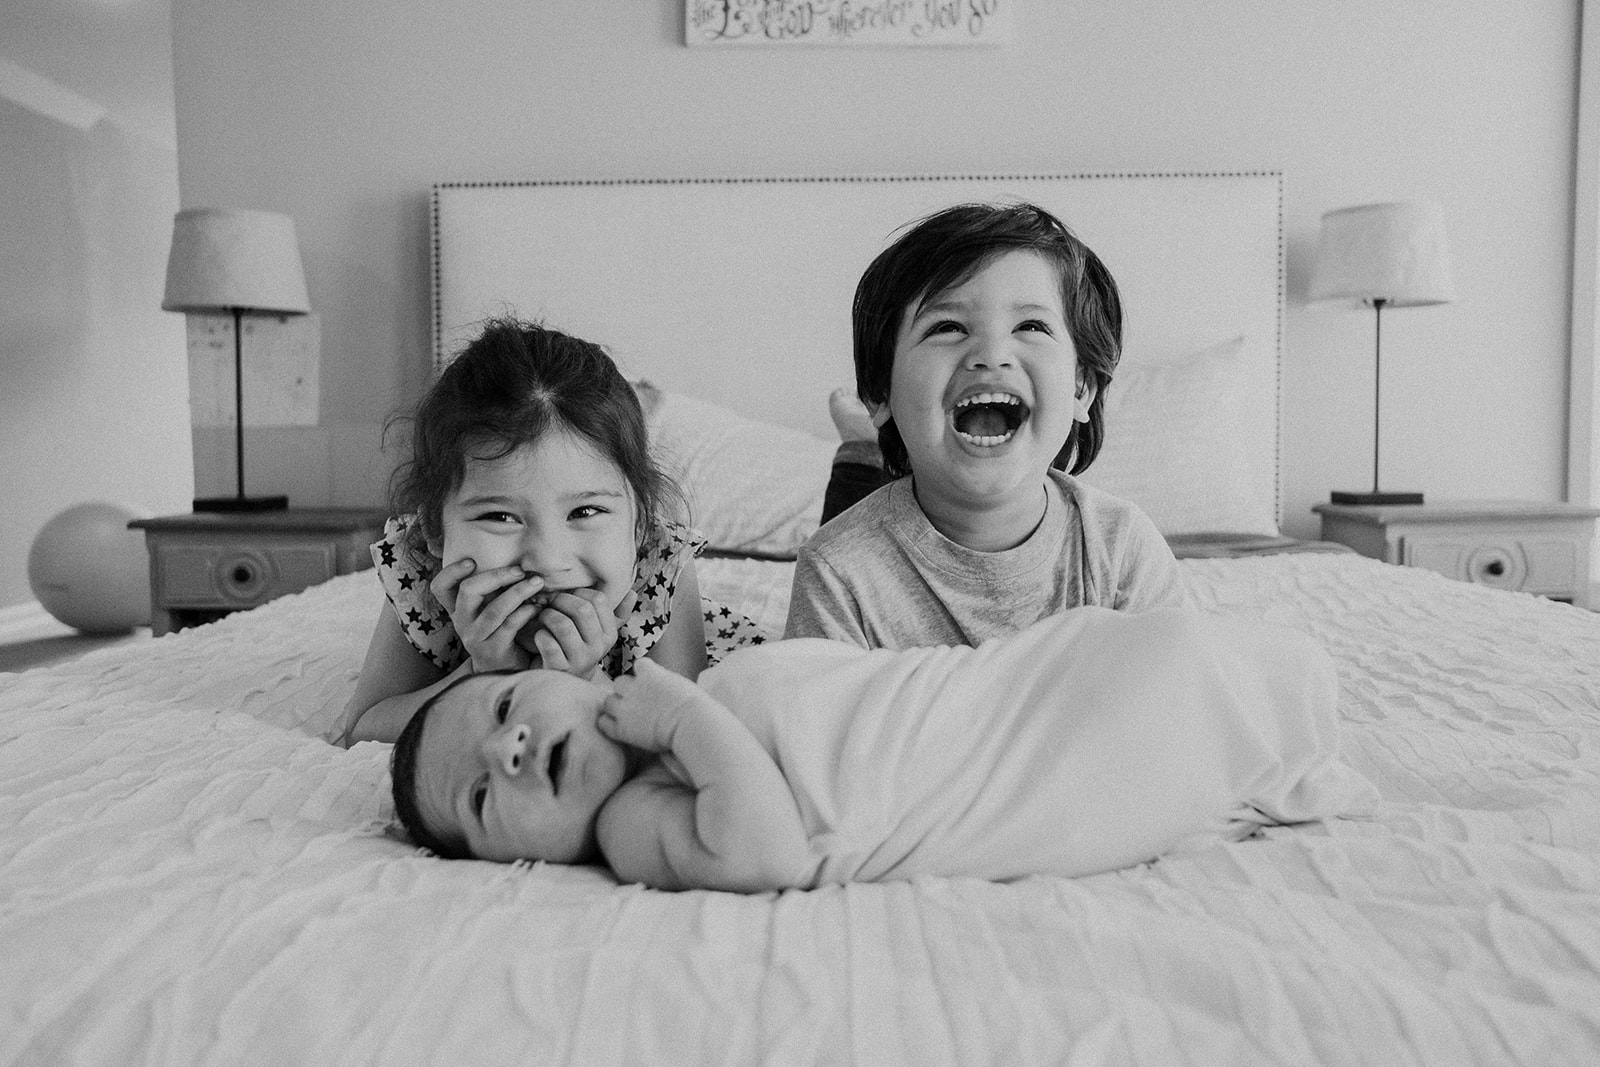 A brother and sister giggle while their baby brother lies in front of them during an in home family photography session.